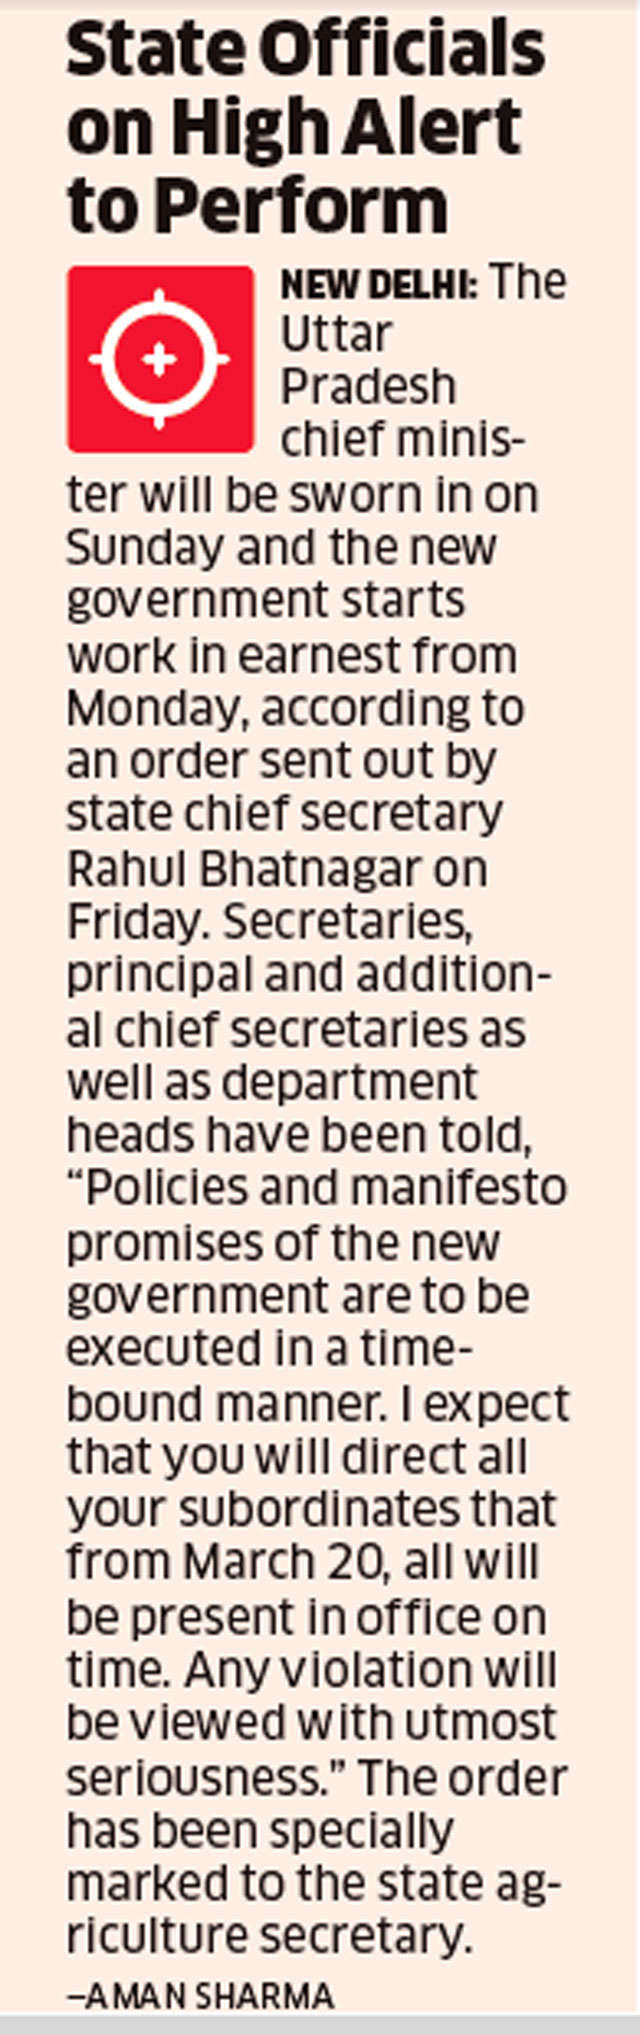 PMO likely to guide new UP chief minister